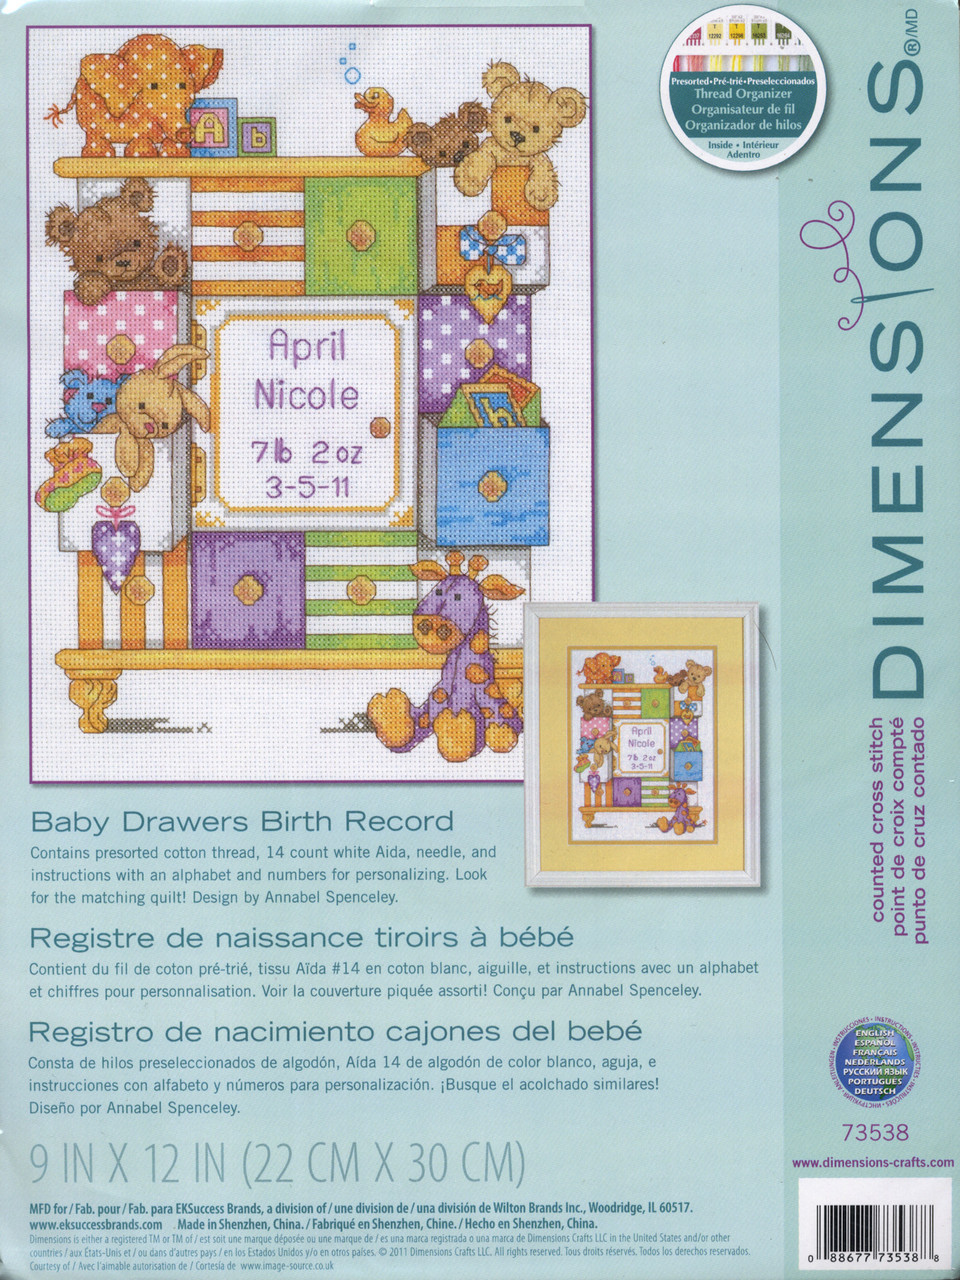 Dimensions - Baby Drawers Birth Record